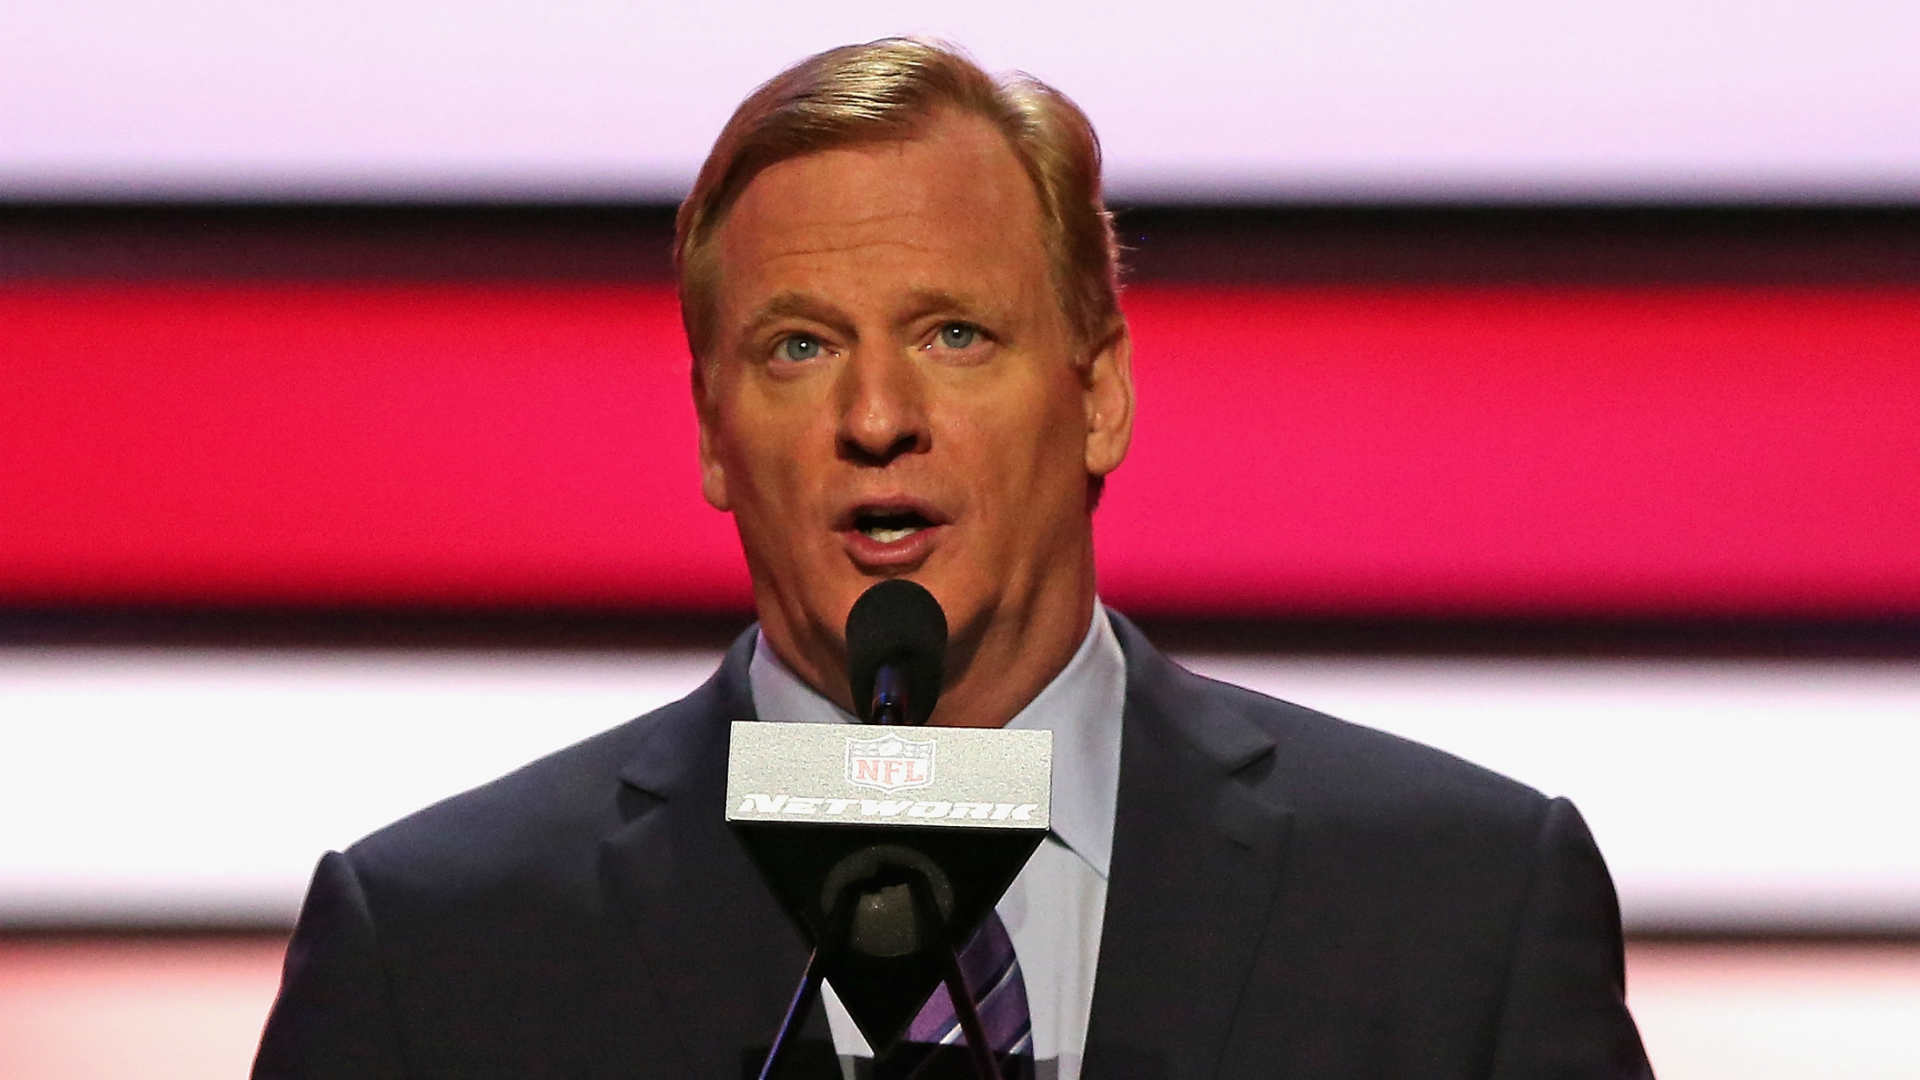 Goodell: Not avoiding going to Pats' home games